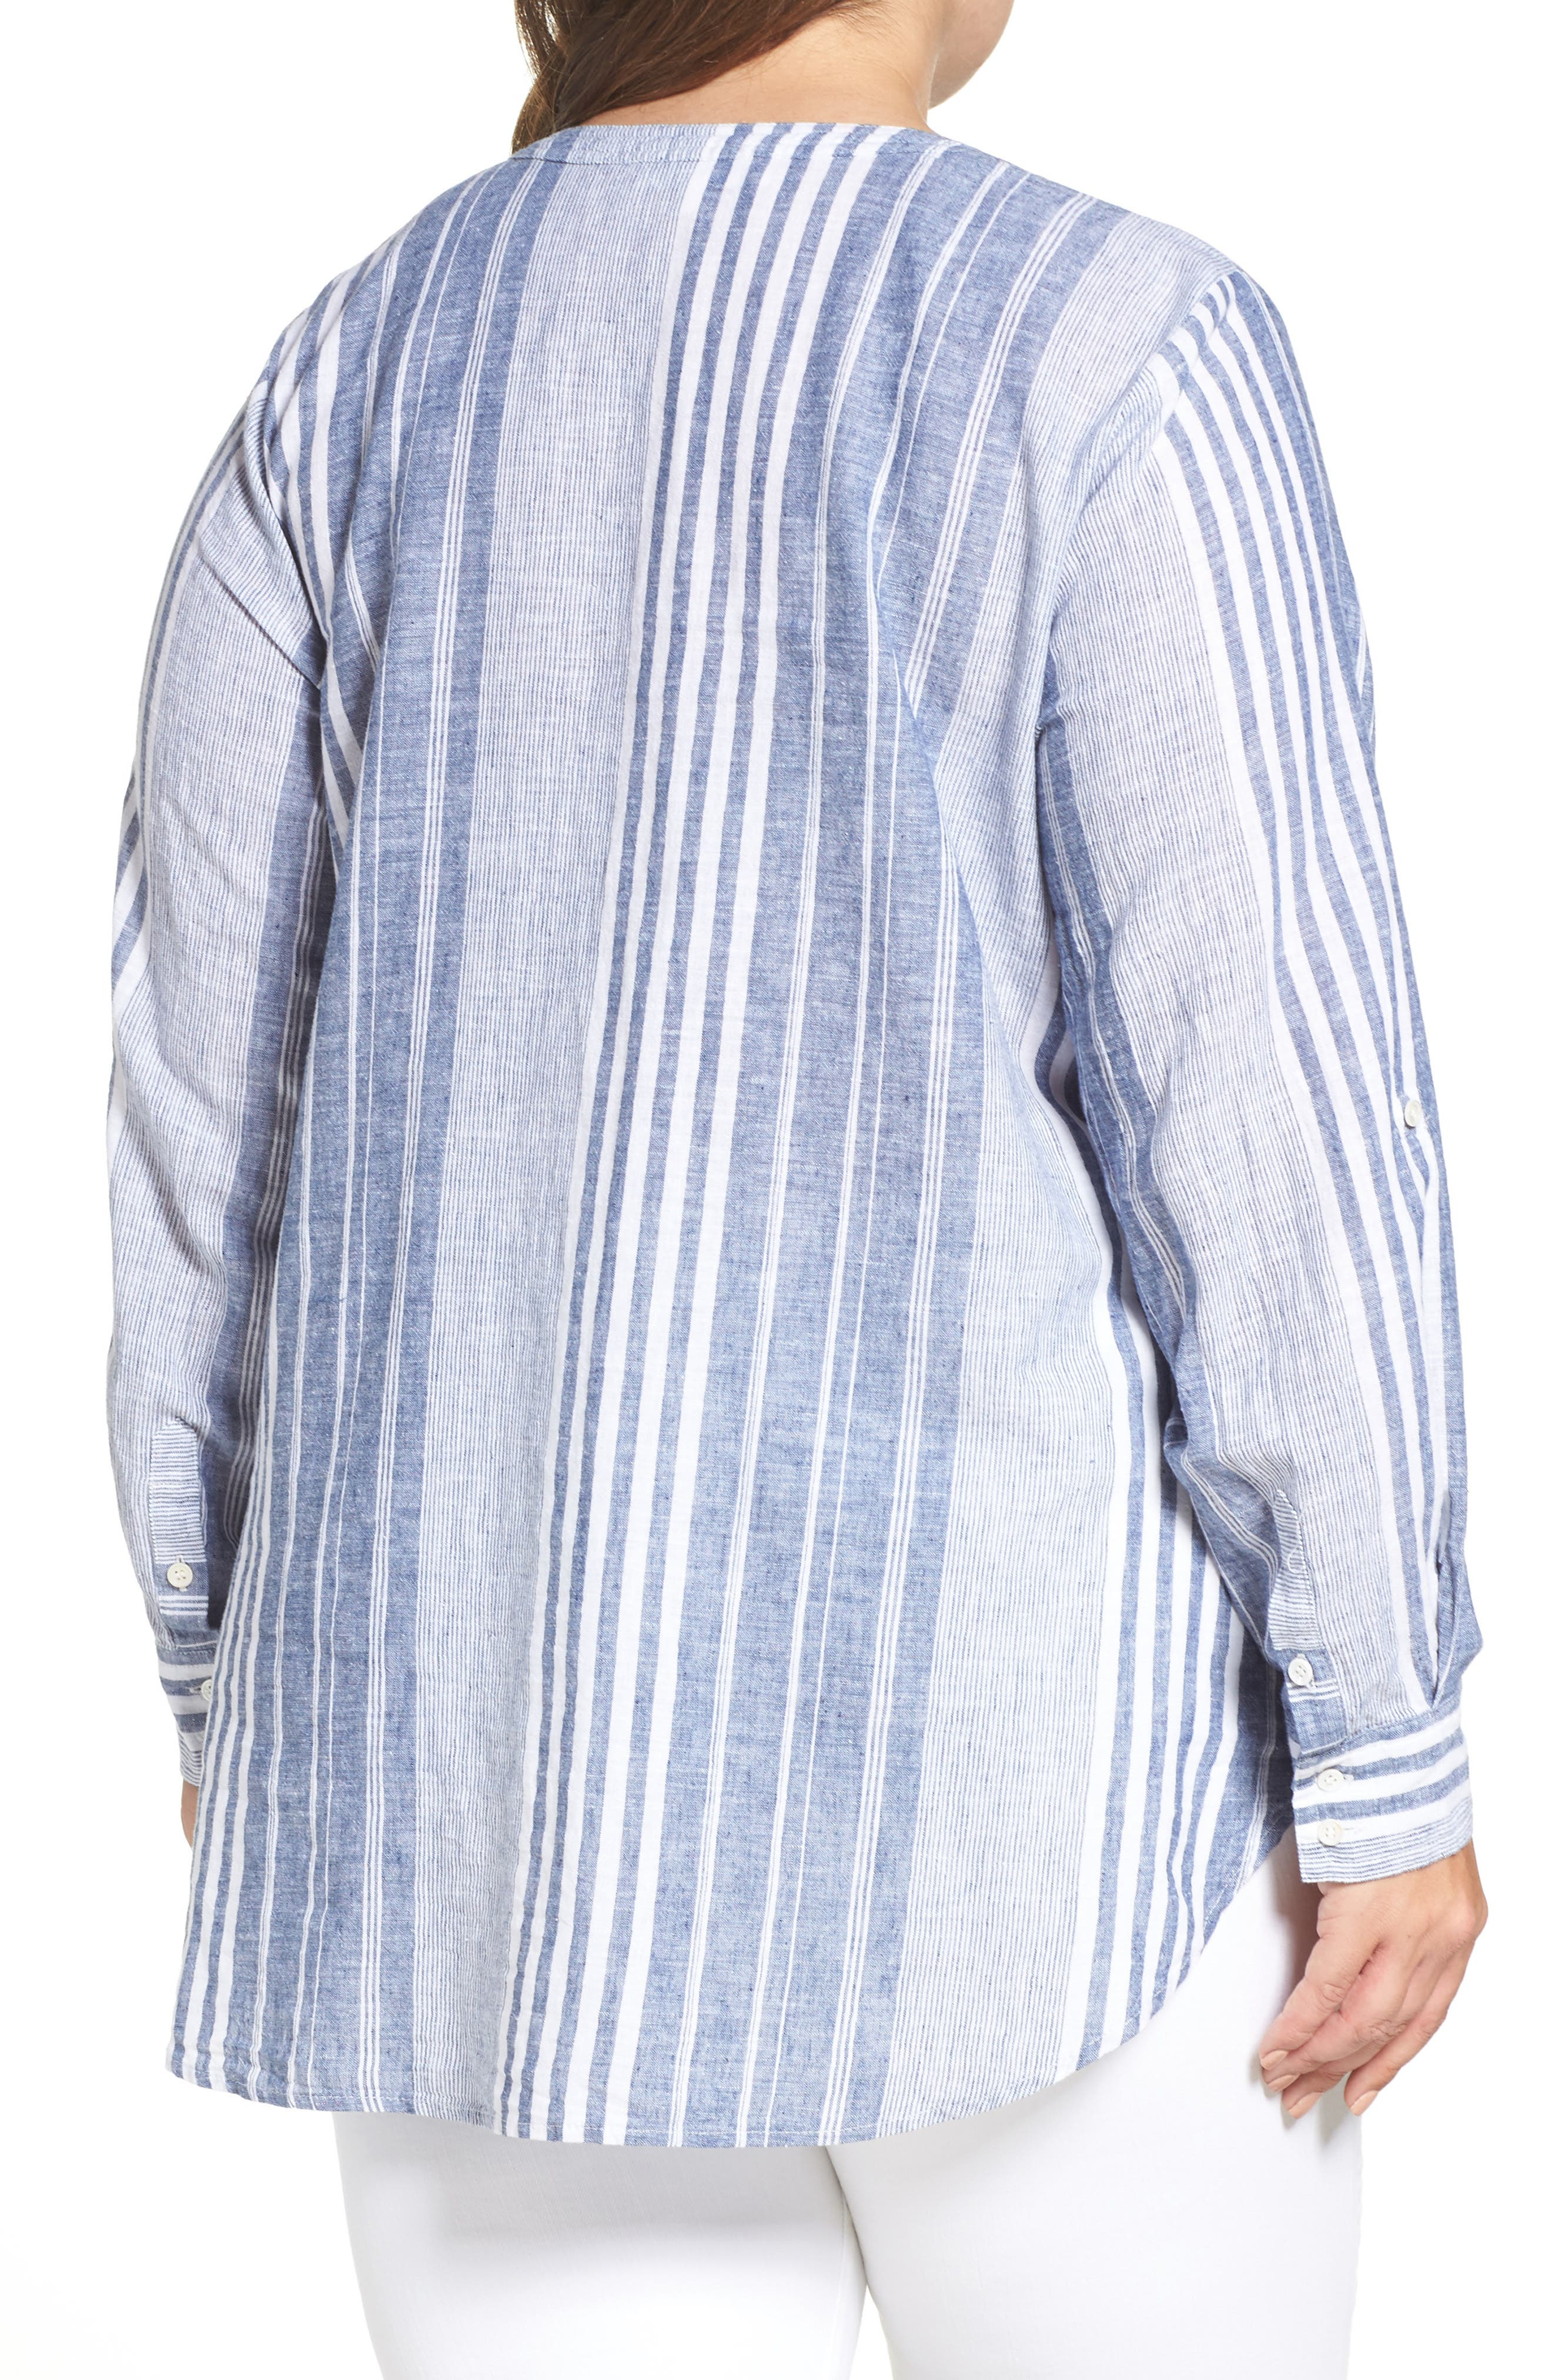 Alternate Image 2  - Two by Vince Camuto Variegated Stripe Linen Blend Tunic (Plus Size)